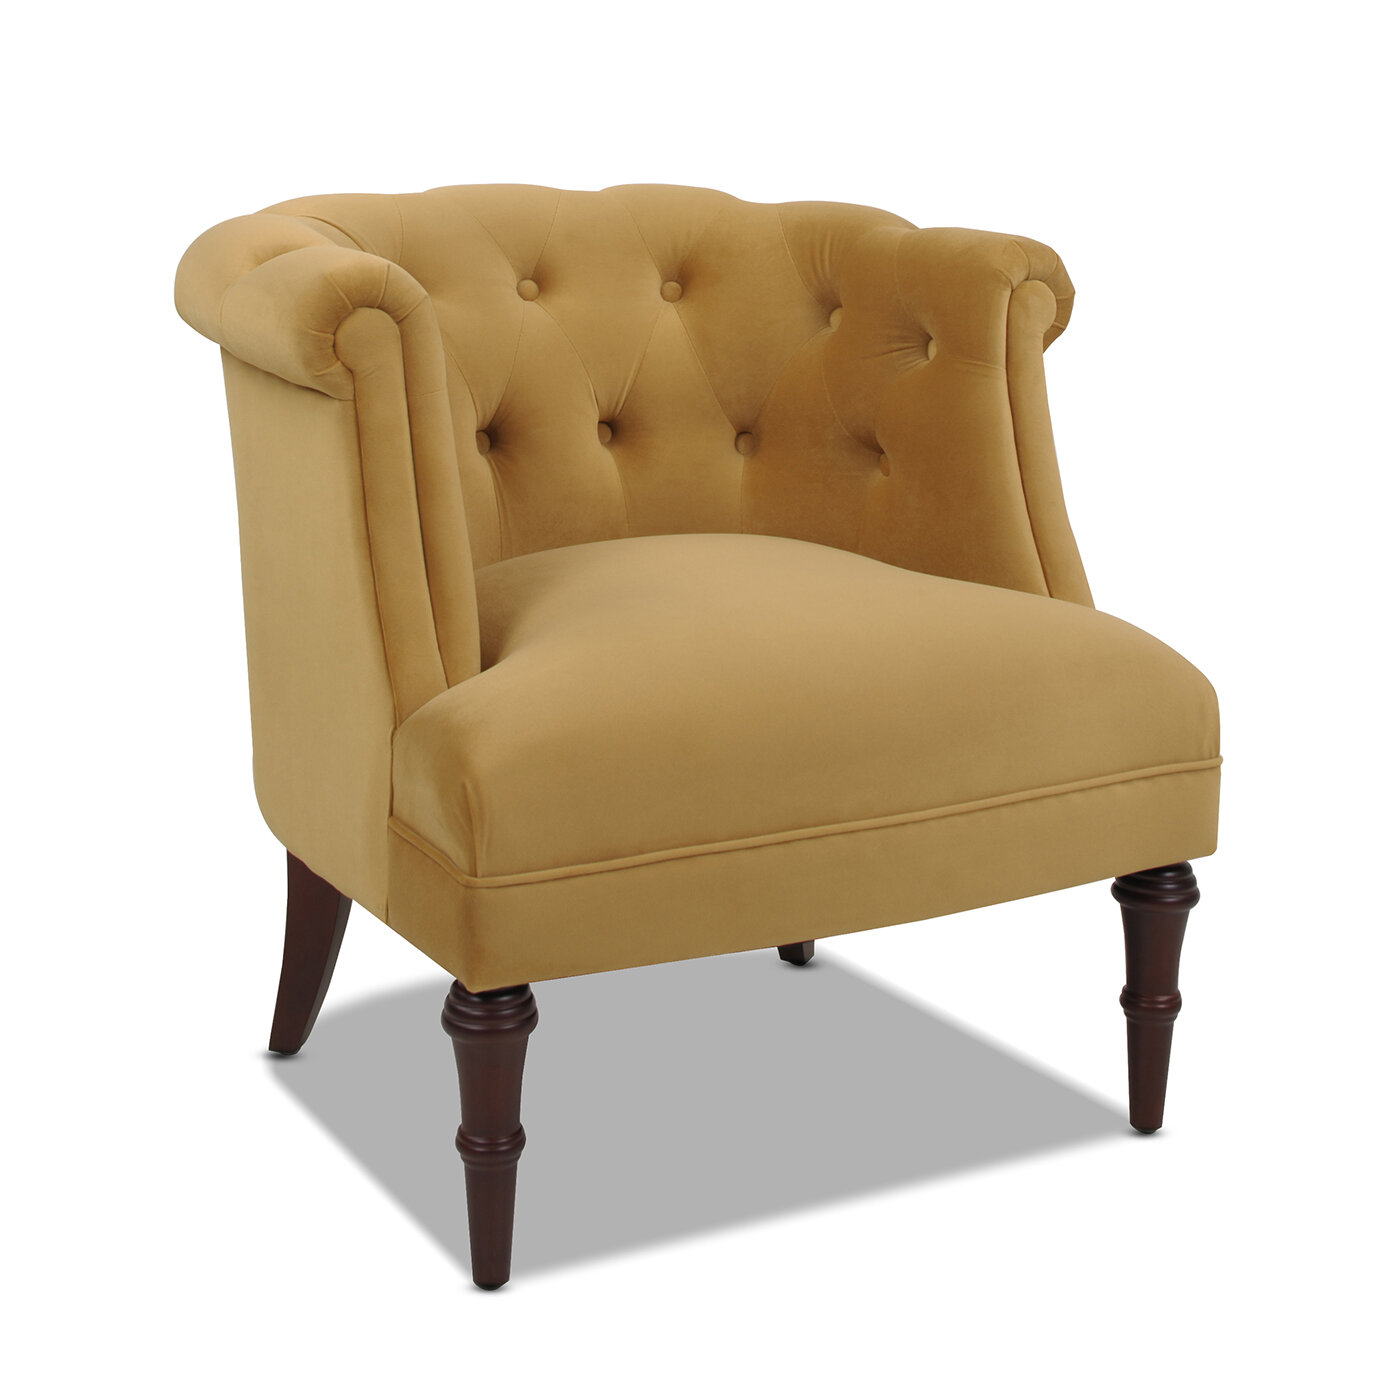 Chesterfield Accent Chairs You'Ll Love In 2021 | Wayfair Regarding Starks Tufted Fabric Chesterfield Chair And Ottoman Sets (View 7 of 15)